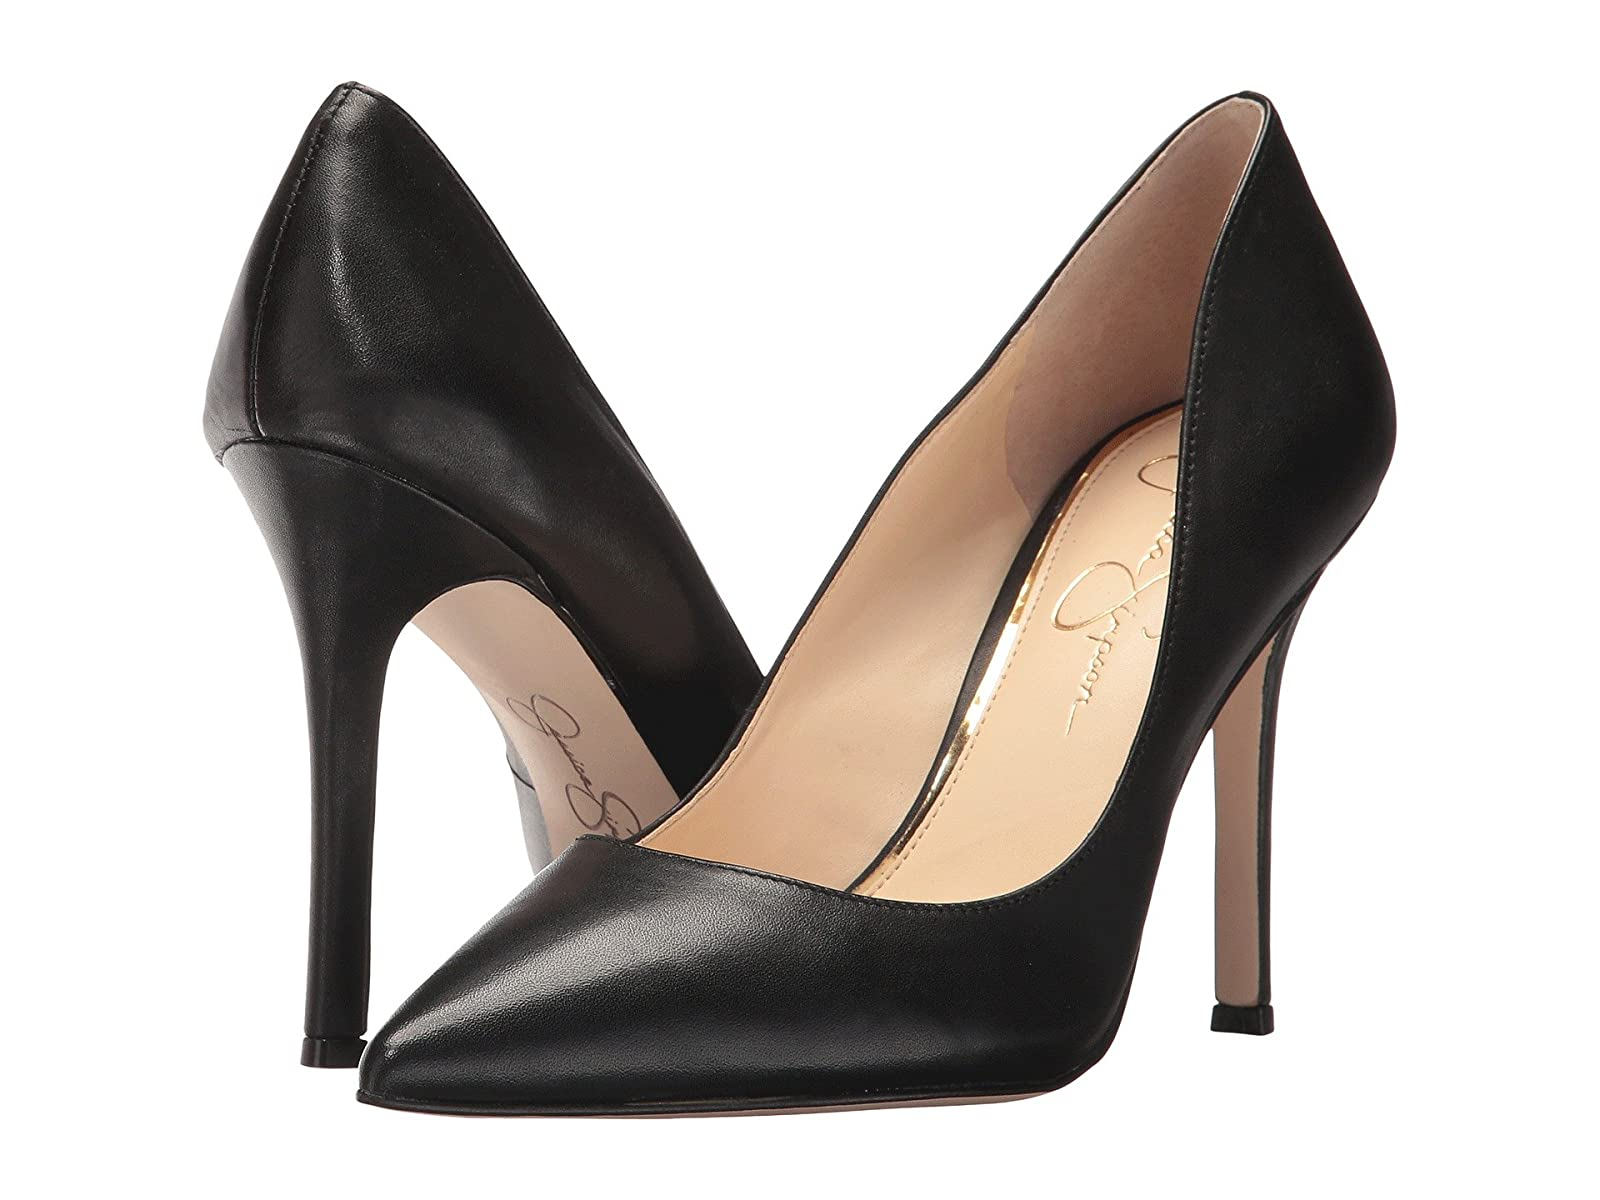 Jessica Simpson BlaykeAtmospheric grades have affordable shoes